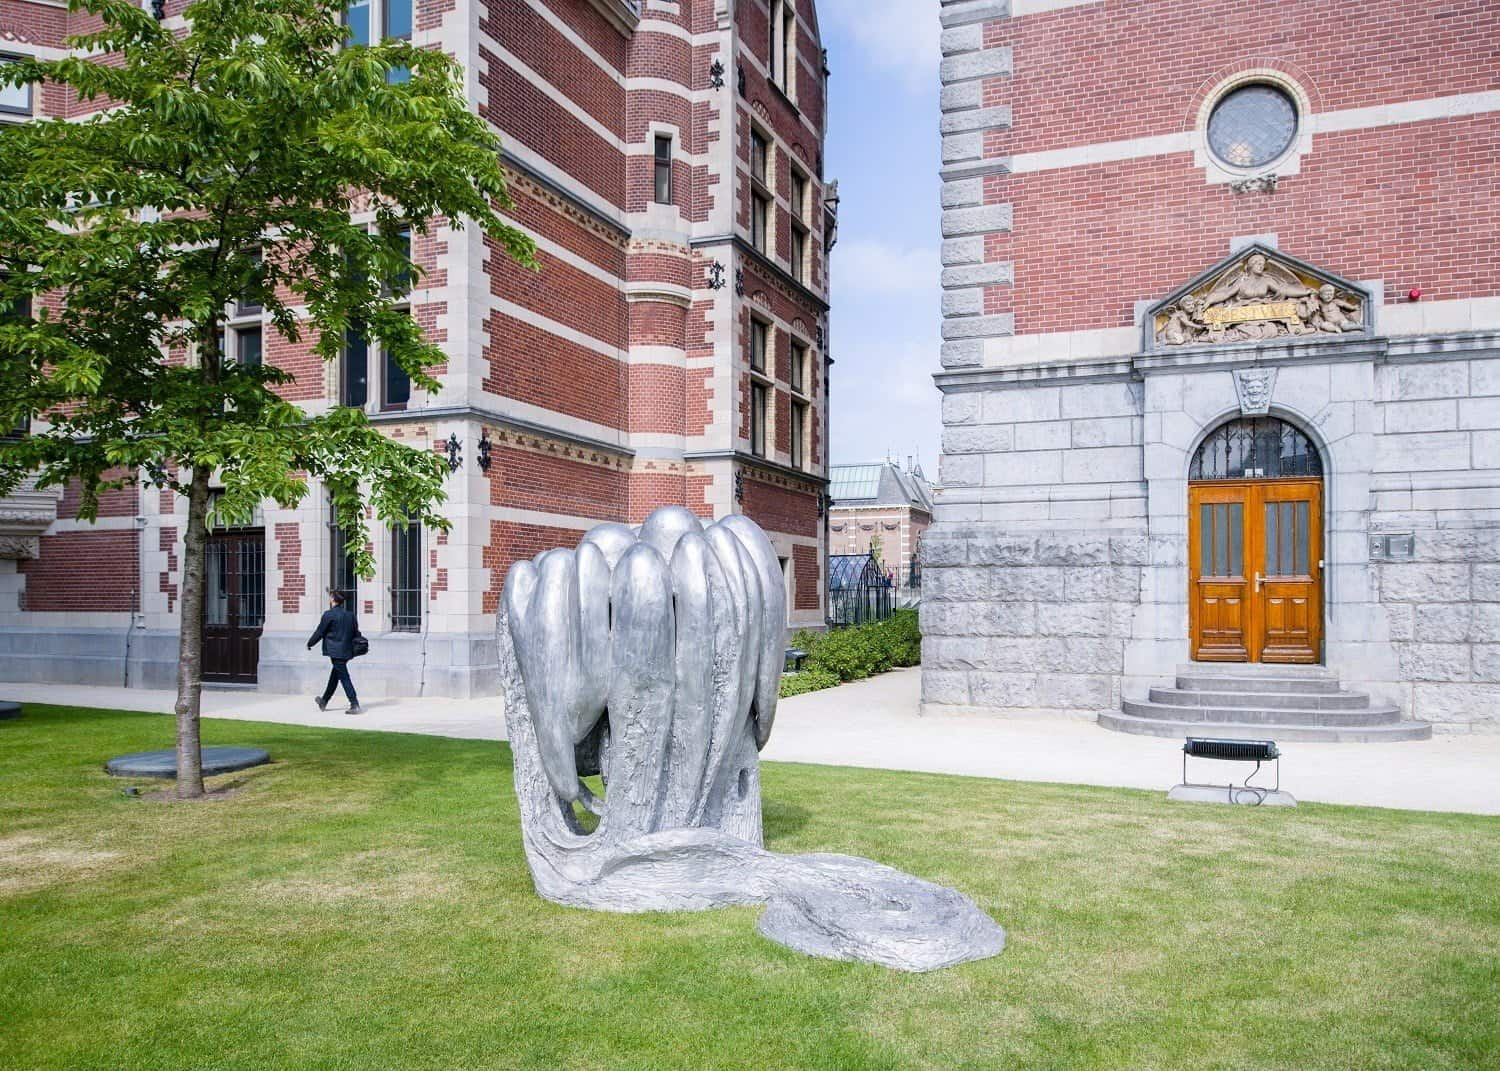 Louise Bourgeois 'In and out #2' 1995-1996, Easton Foundation. Foto: Antoine van Kaam © The Easton Foundation/Pictoright, Amsterdam